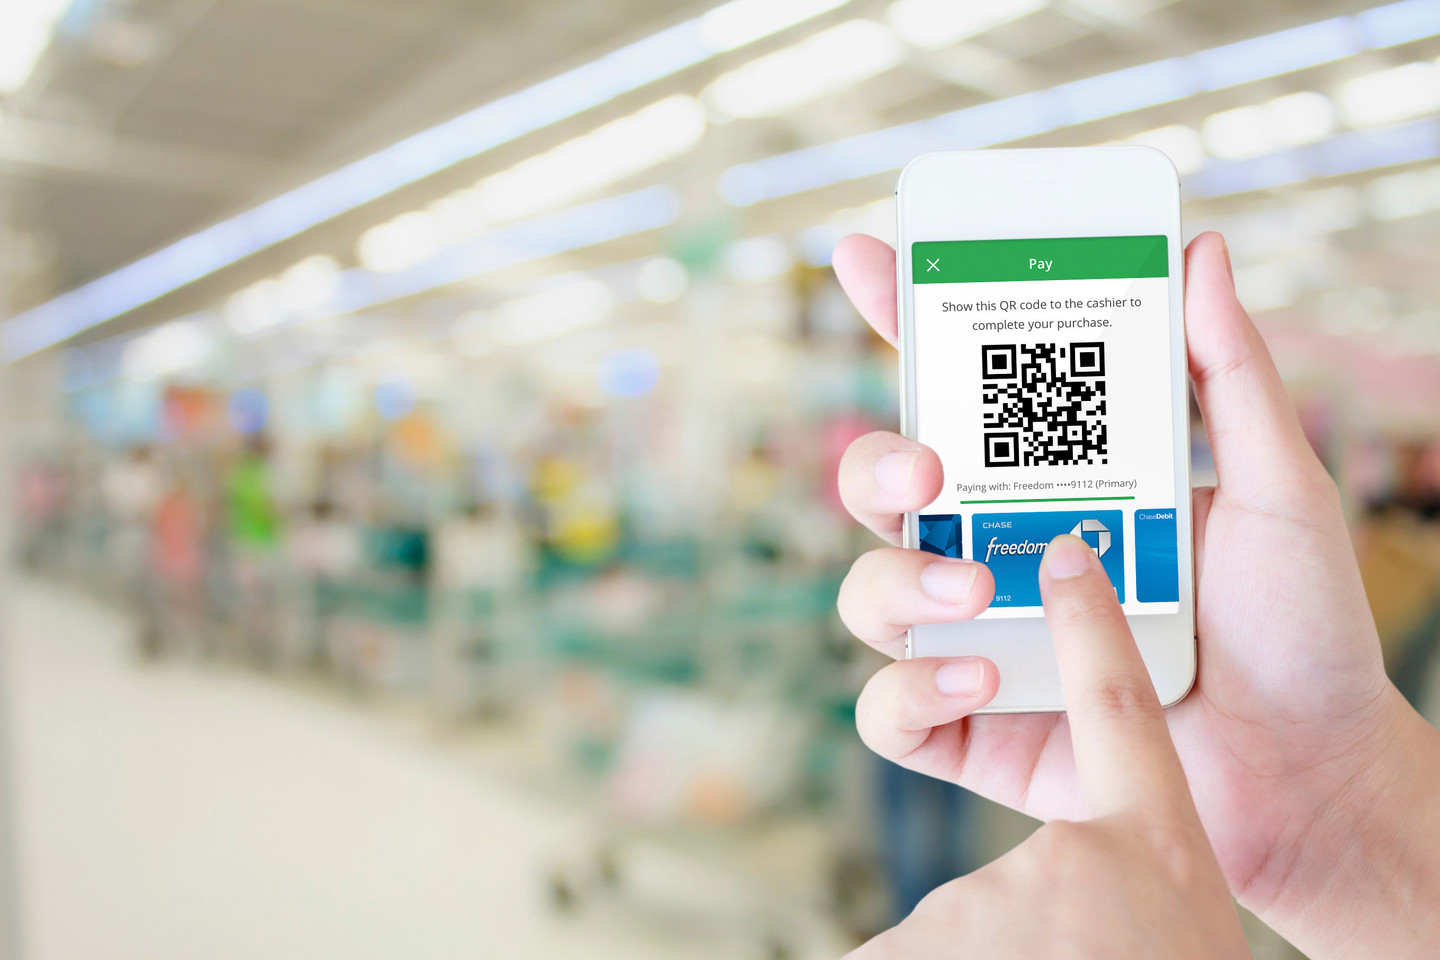 Walmart Continues to Shun Apple Pay In Favor of Another QR Code